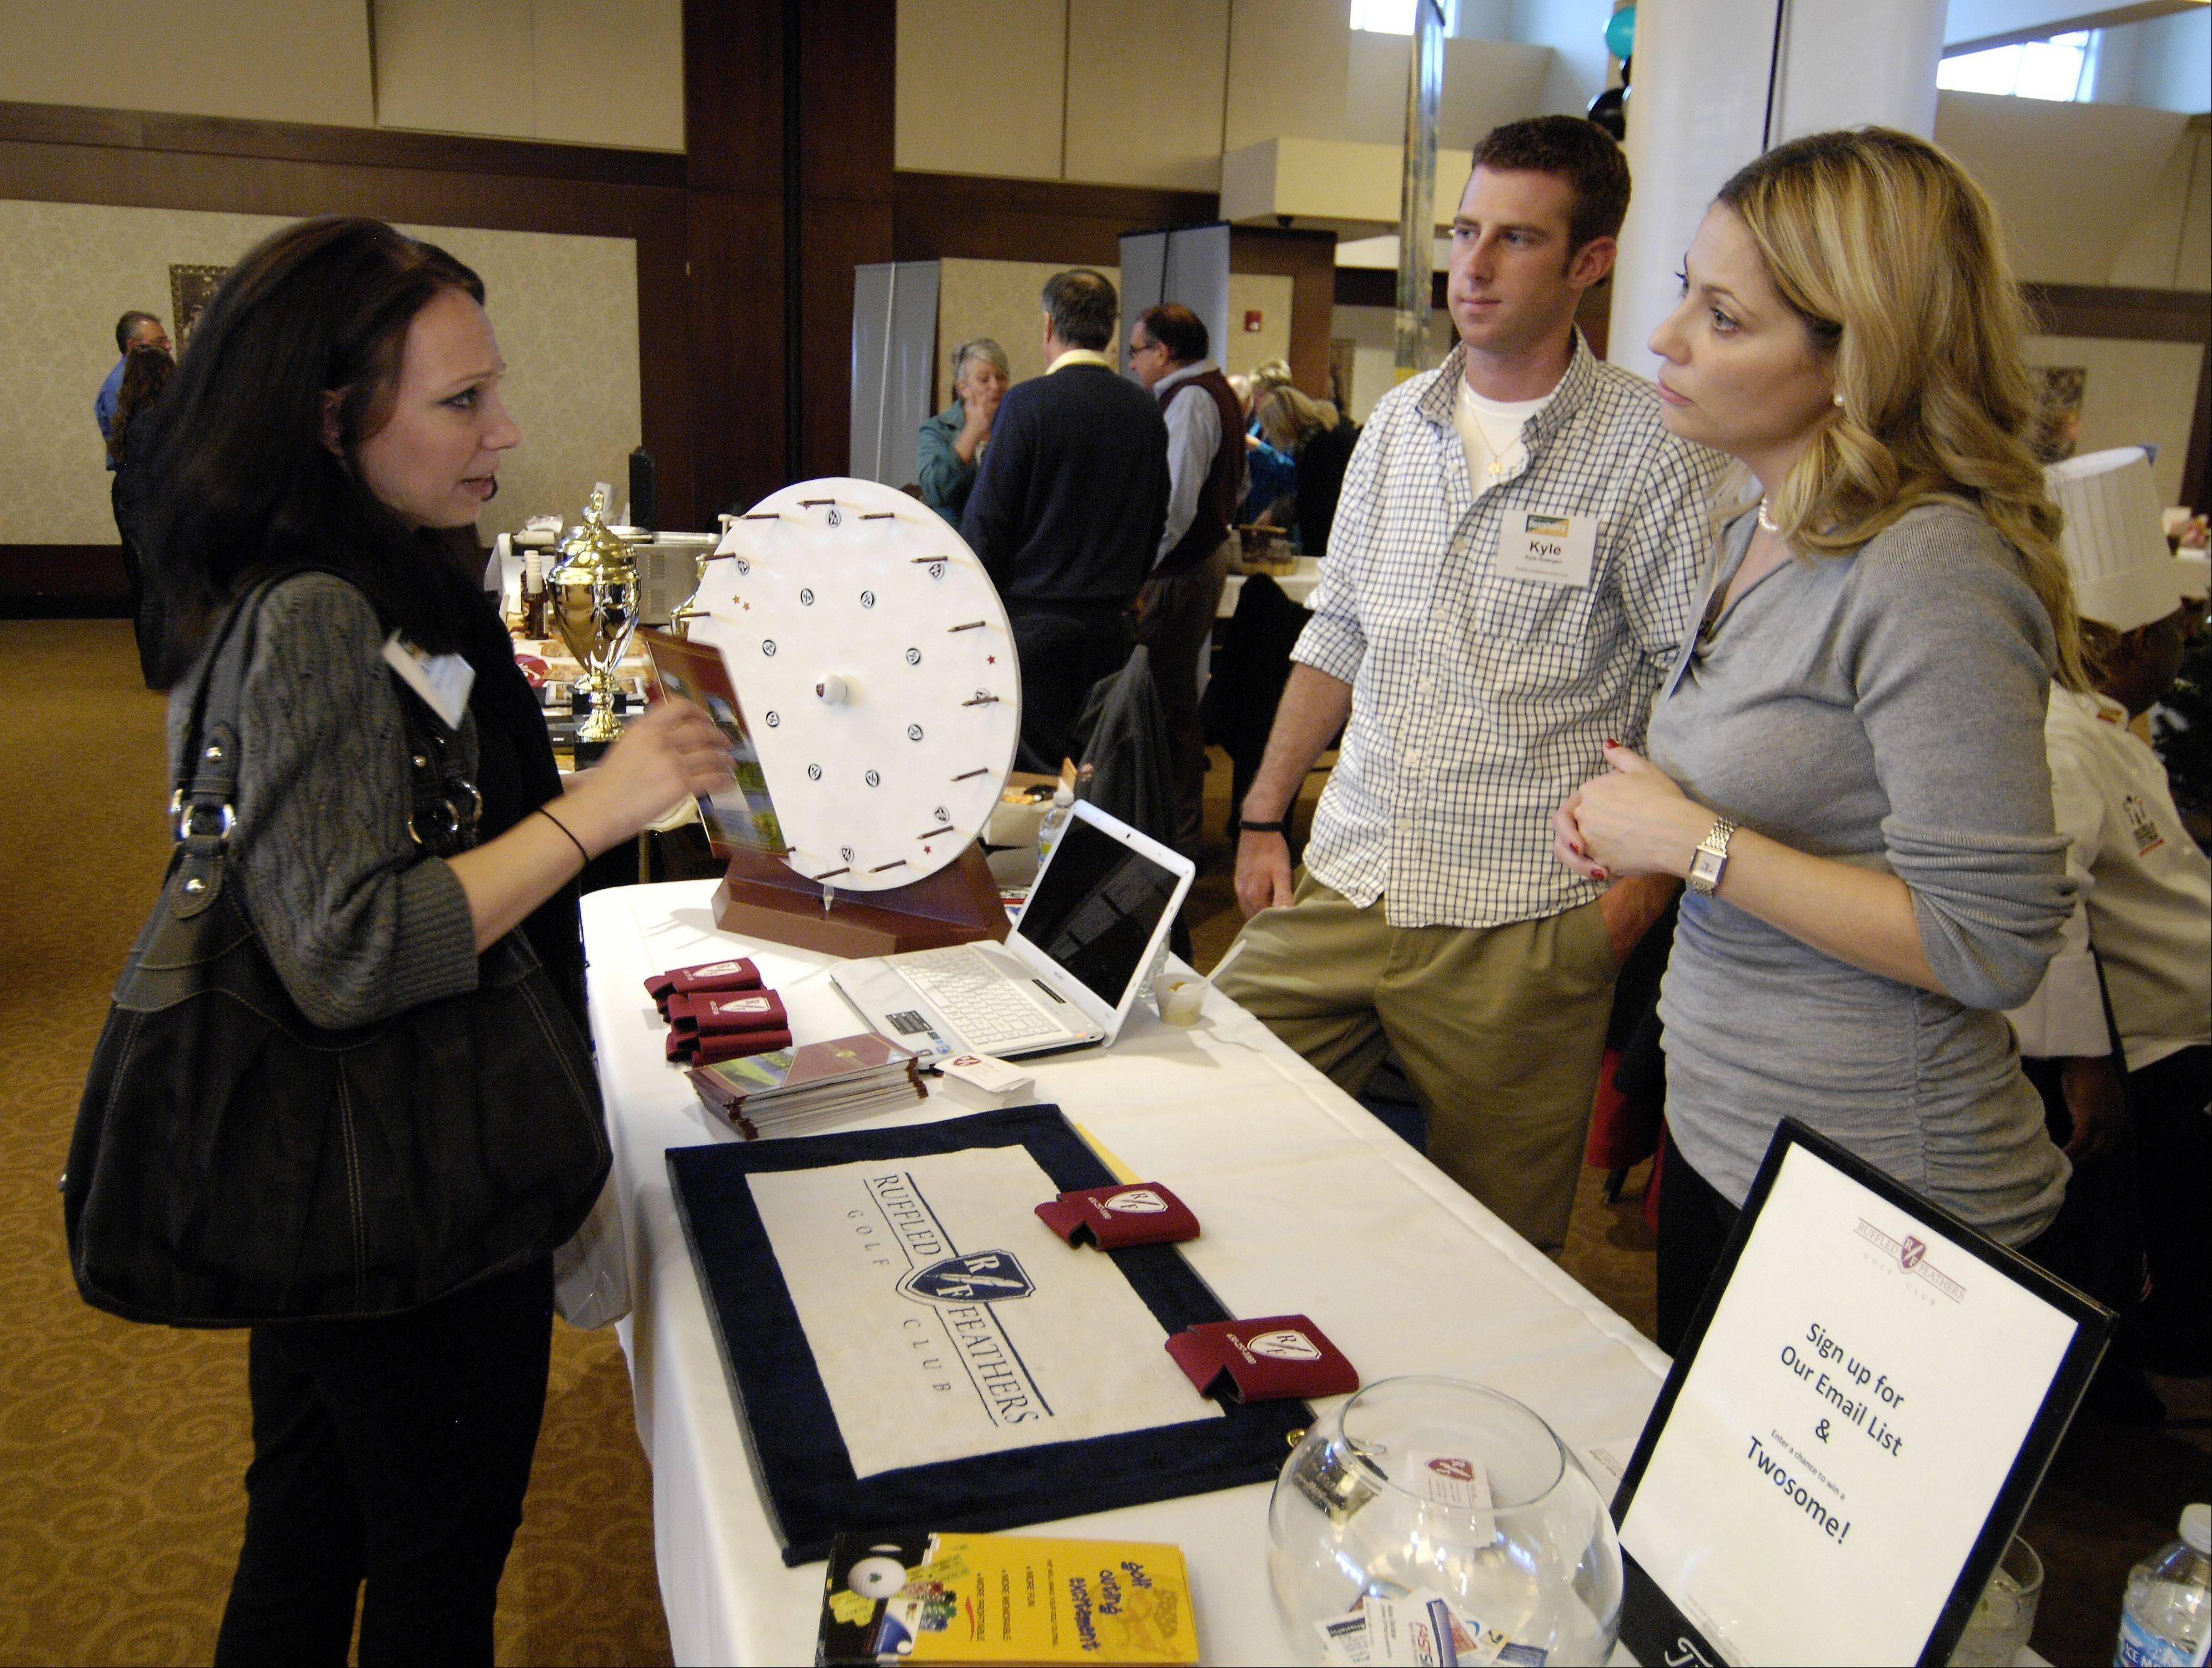 DAILY HERALD/Mark BlackAlison Glickman of Fast Signs in Oakbrook Terrace talks with Kyle Goergen and Lisa Lutz of Ruffled Feathers golf course in Lemont during the Daily Herald Business Ledger Hospitality Expo in Woodridge, Thursday.